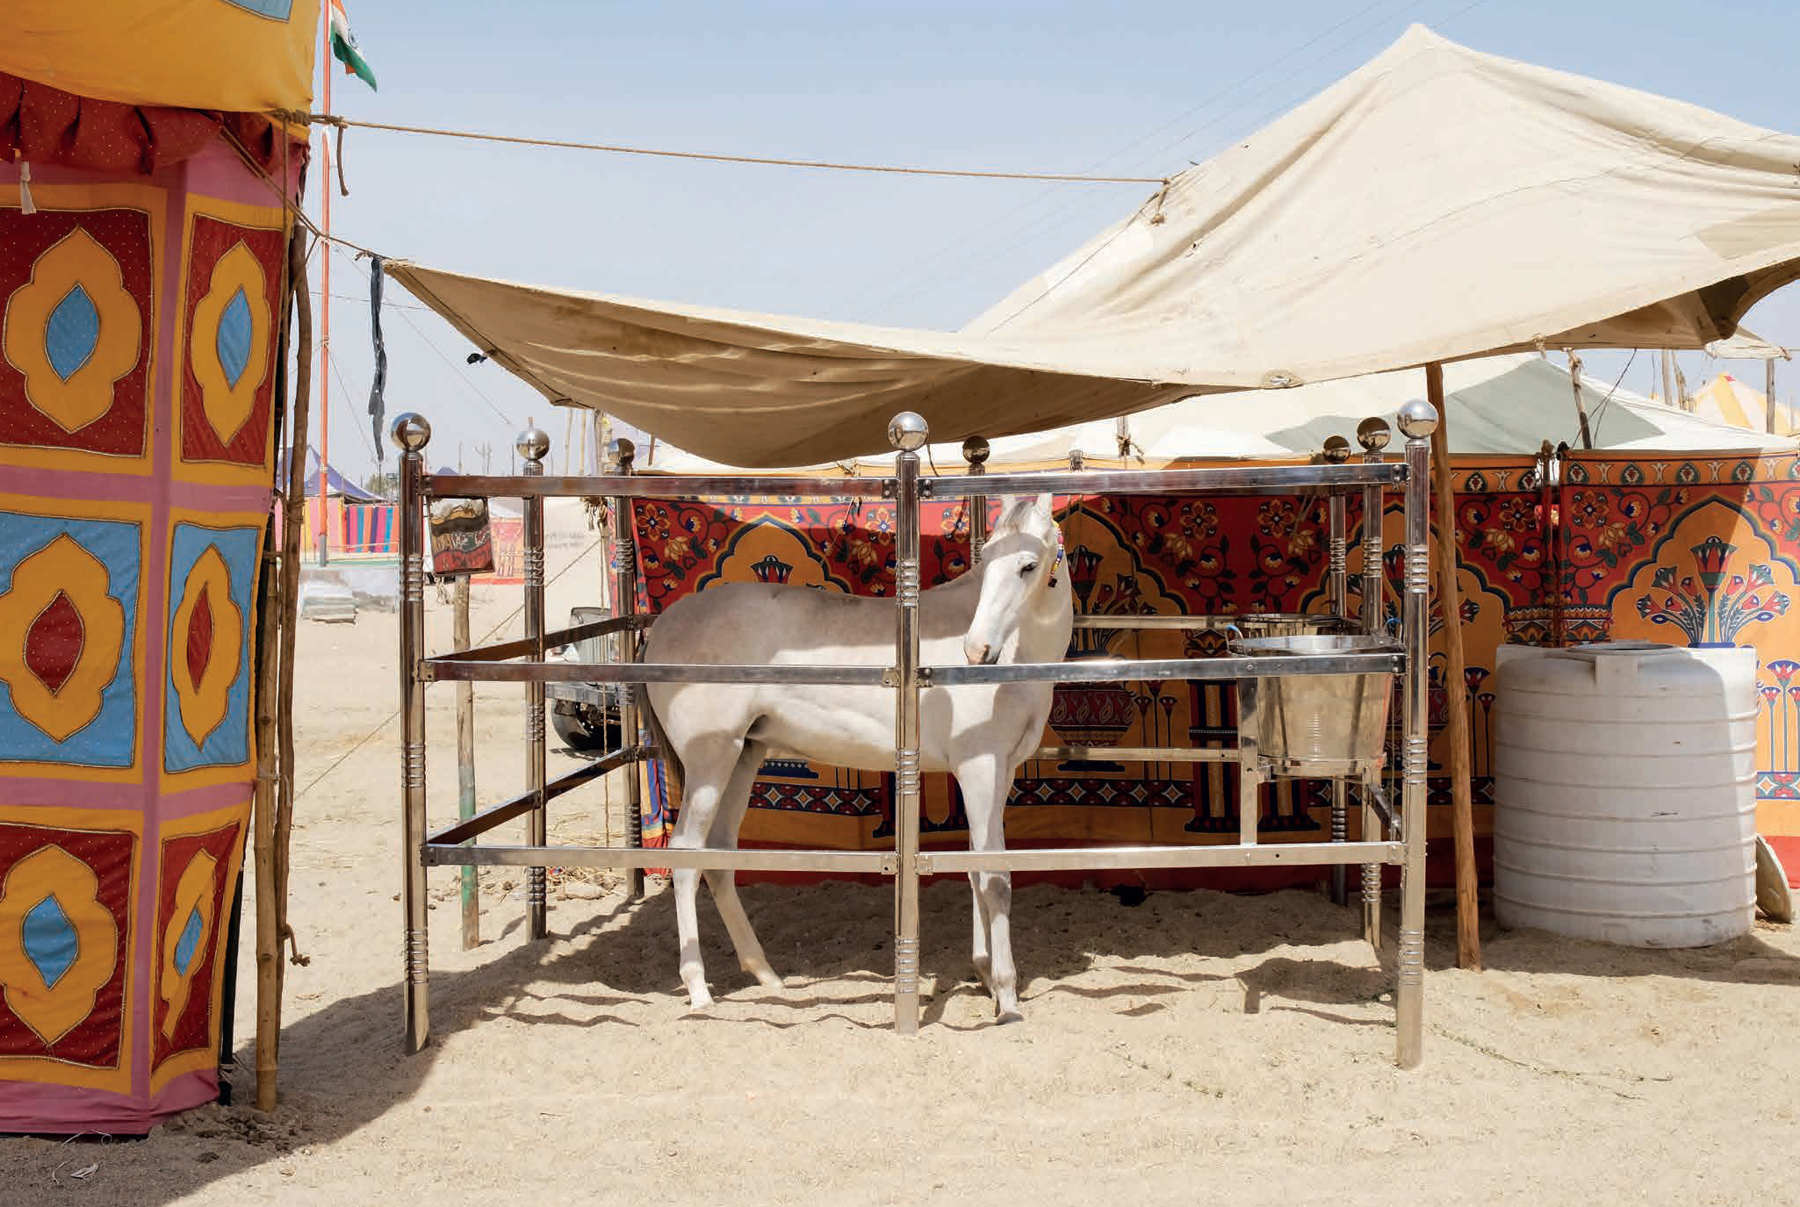 Redux Pictures On Twitter An Equine Odyssey In Ancient India Jennifer Osborne S Photo Story About Marwari Horses Is Featured In Athletamagazine Marwari Horses Are An Archaic Warhorse Linked To The Arabian Line